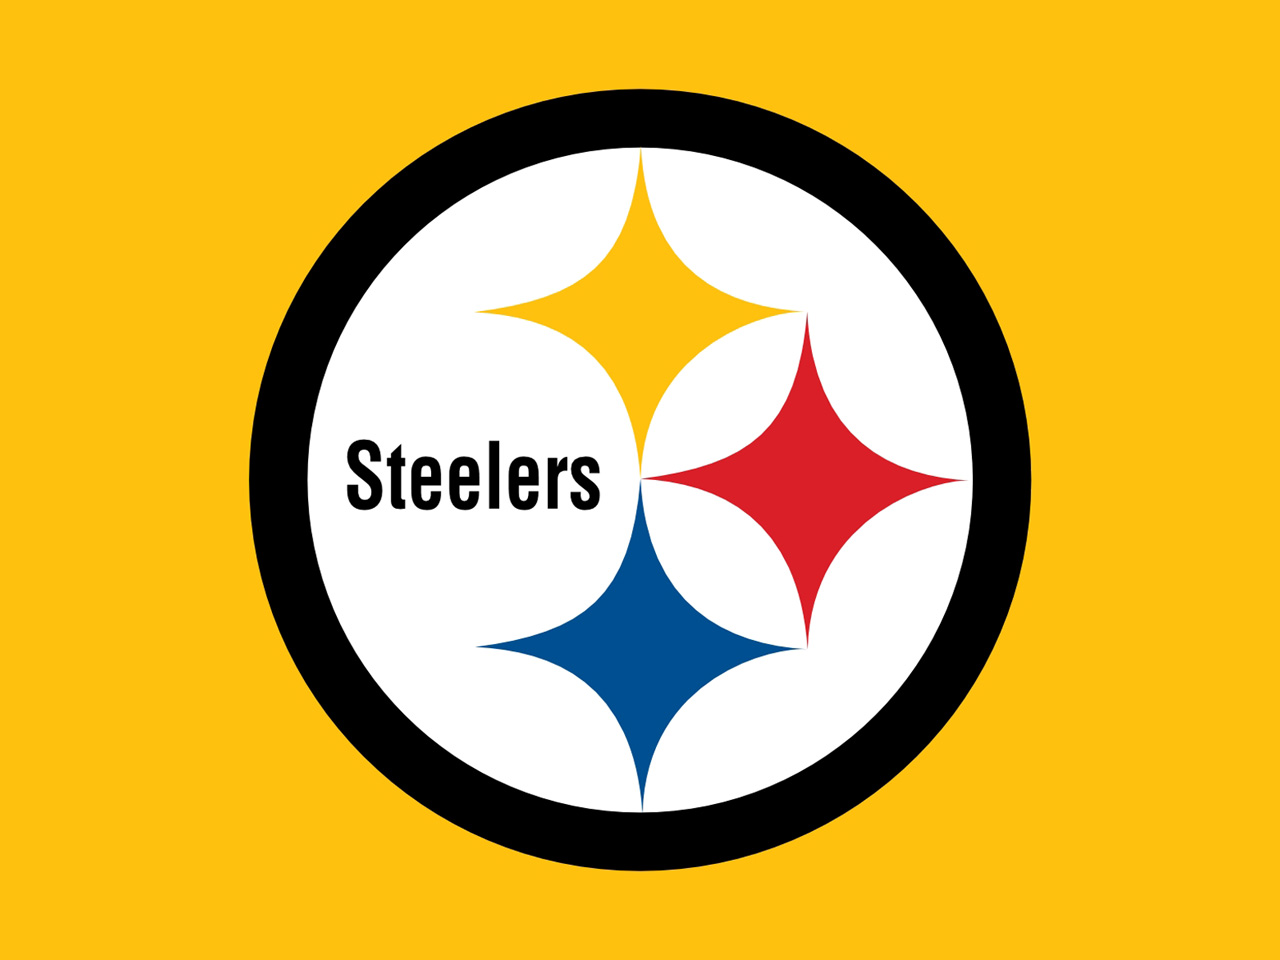 CRIKEY! FOOTBALL IN LONDON! Pittsburgh Steelers vs ...